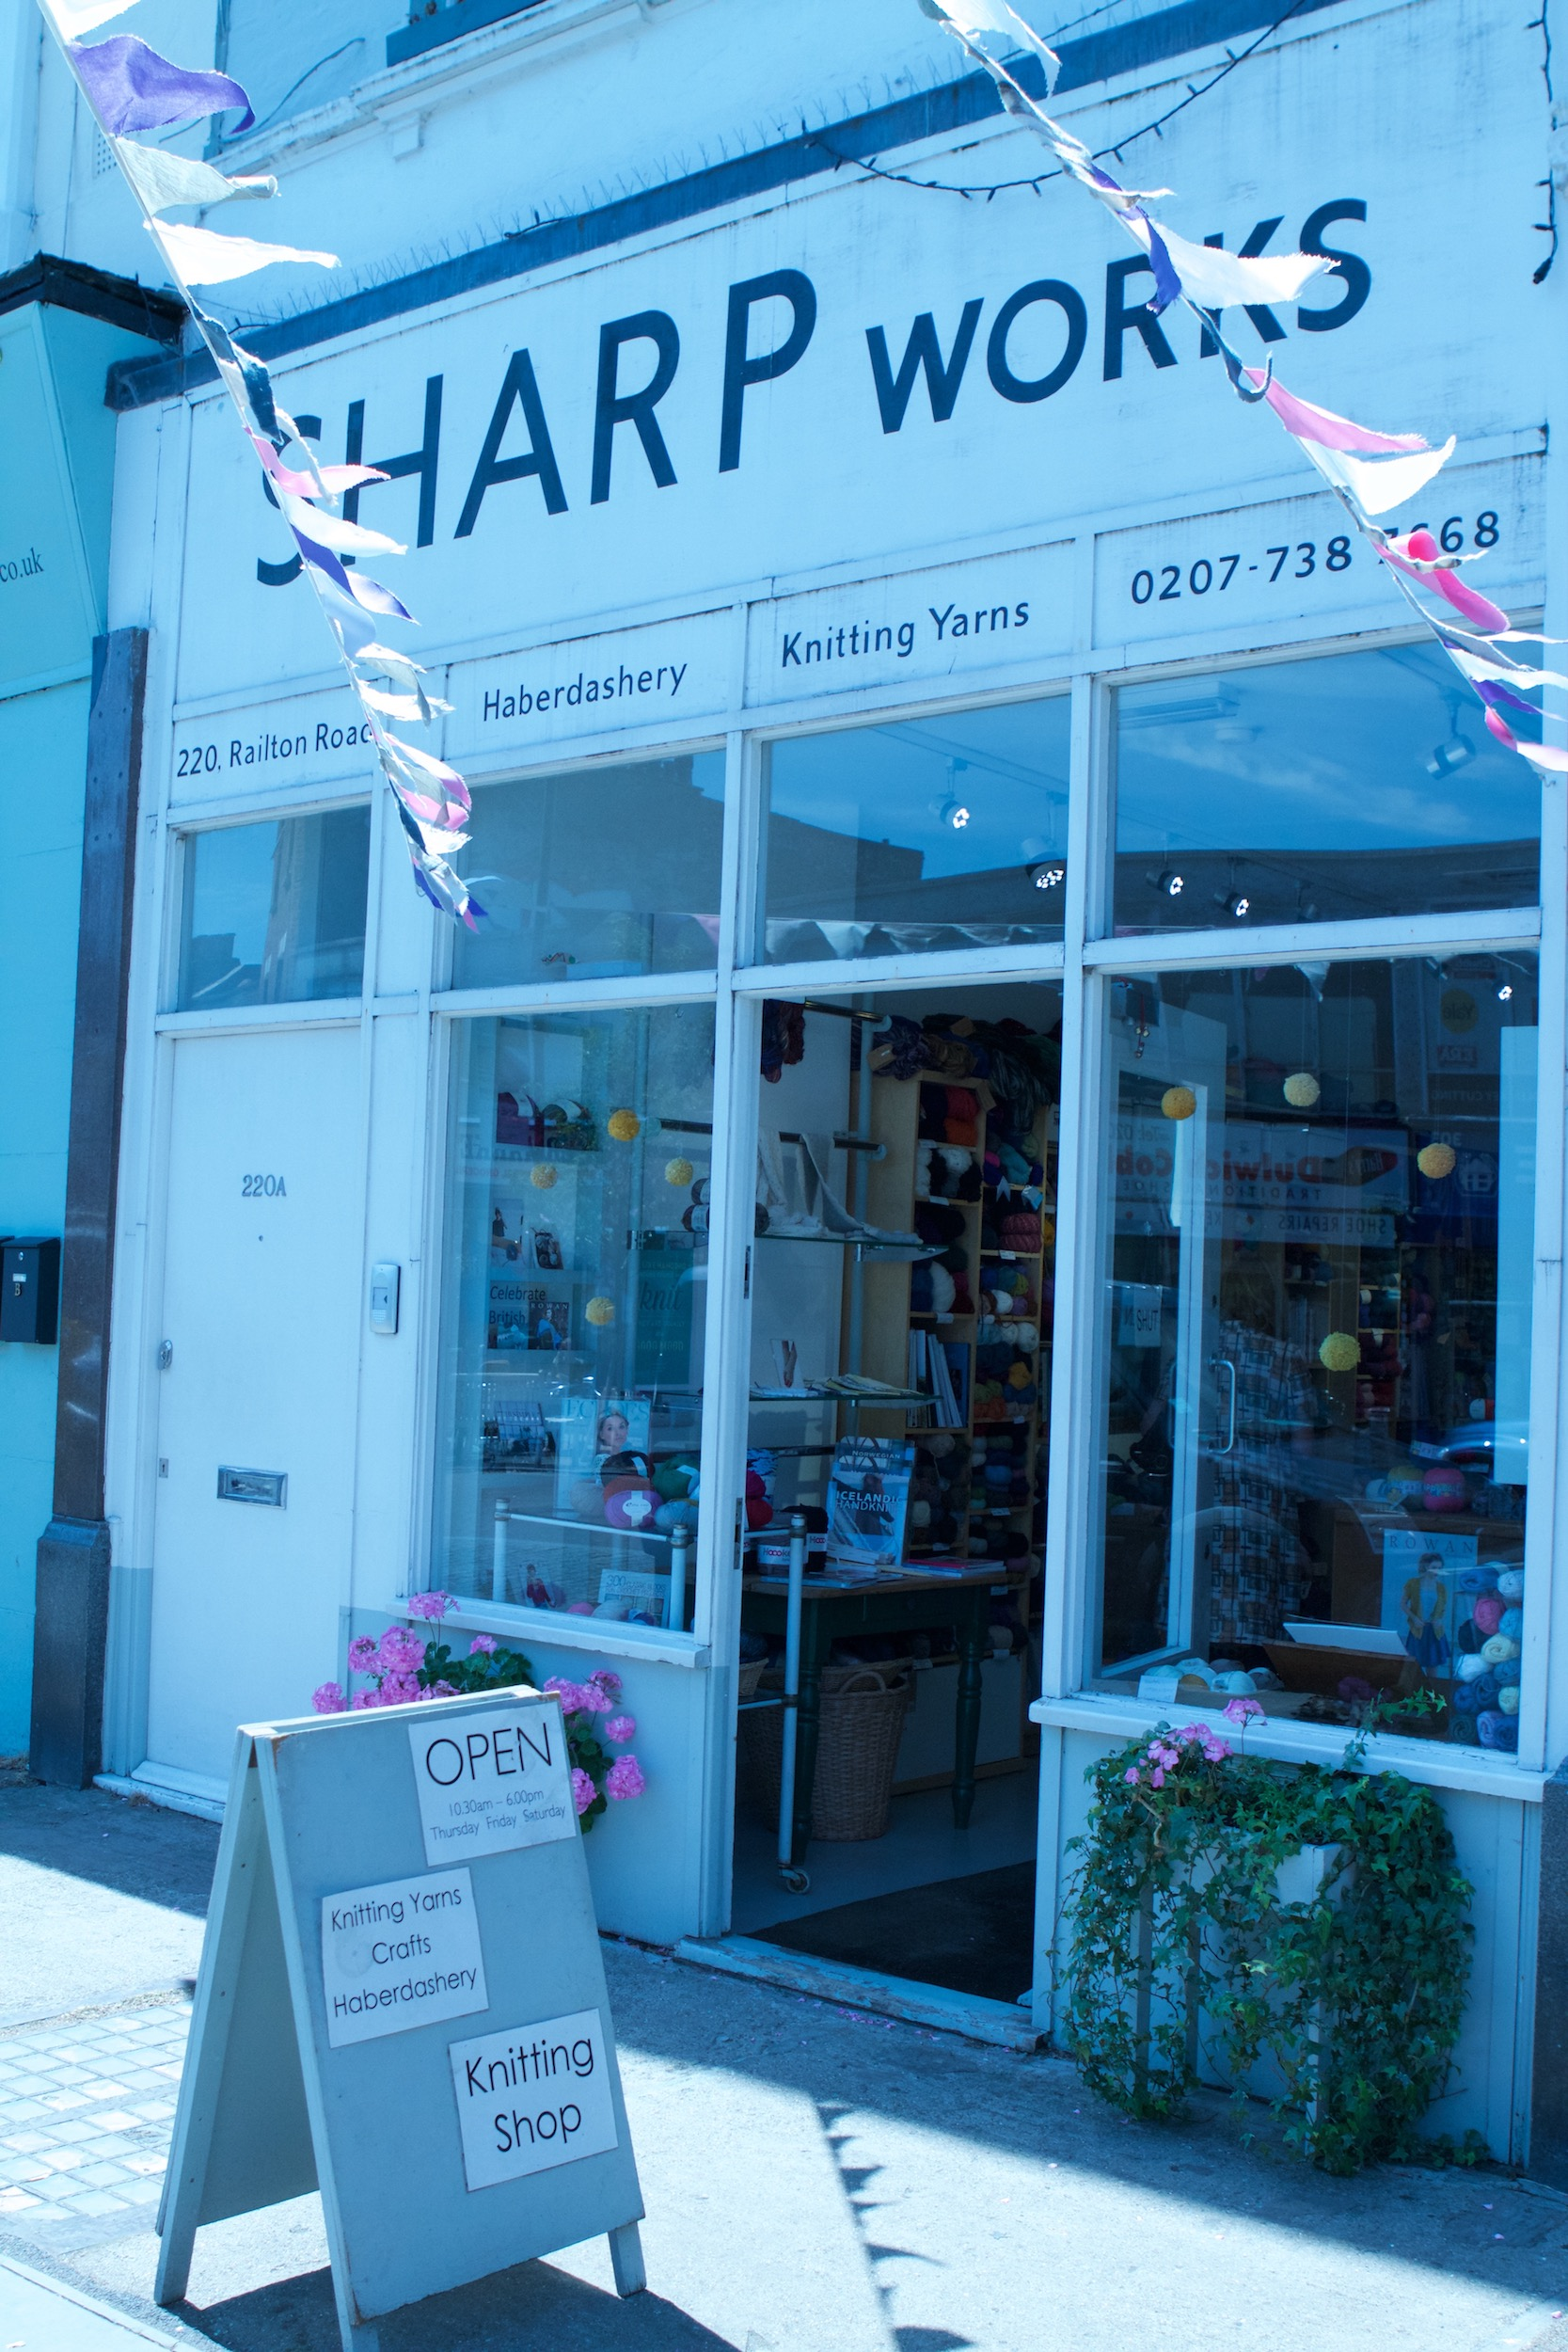 Sharp Works can be found in charming Herne Hill, south London